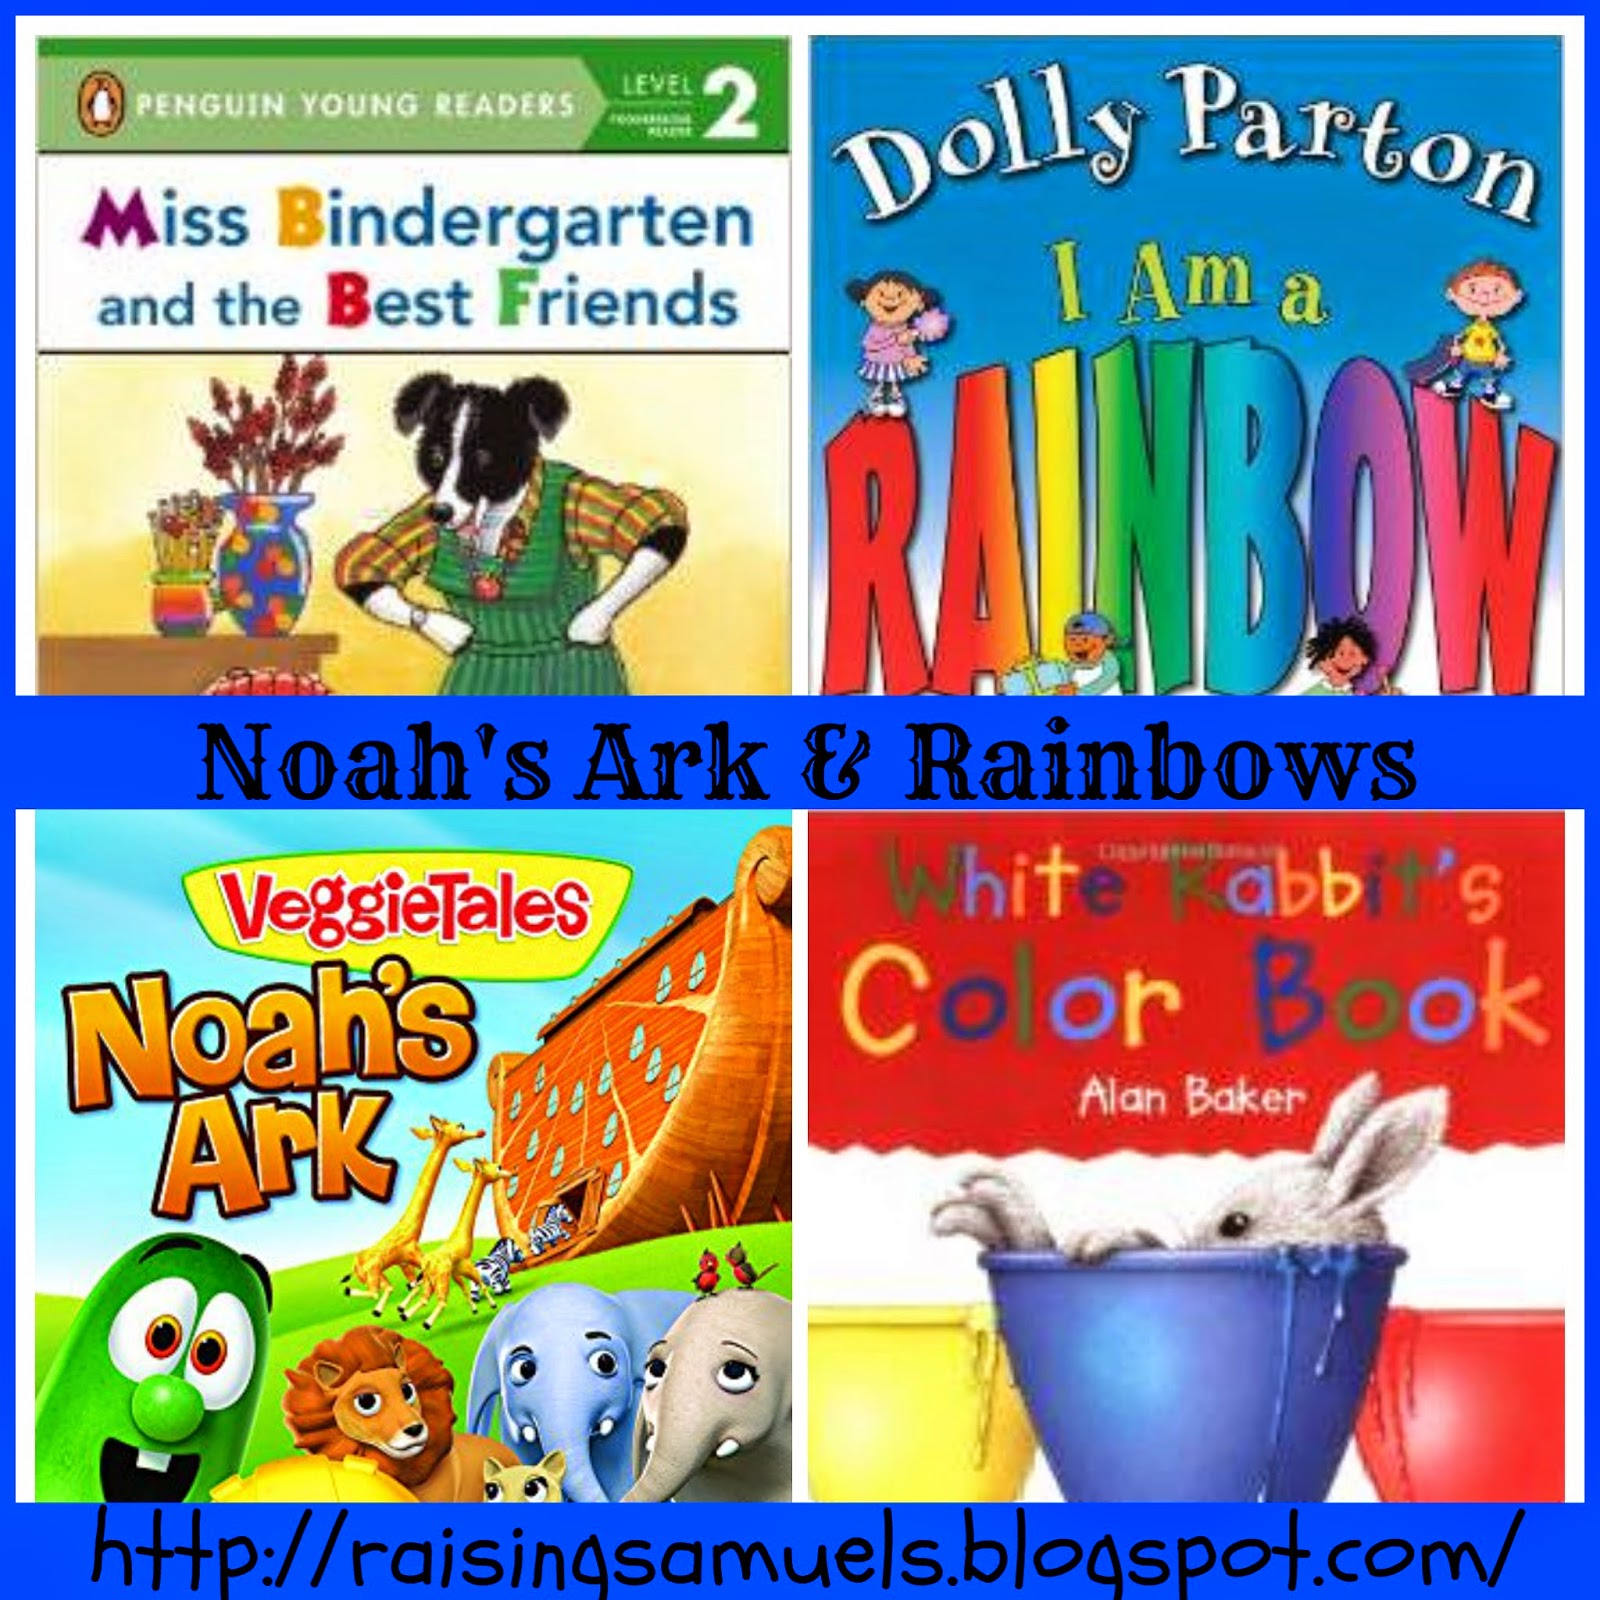 Noah's Ark and Rainbows